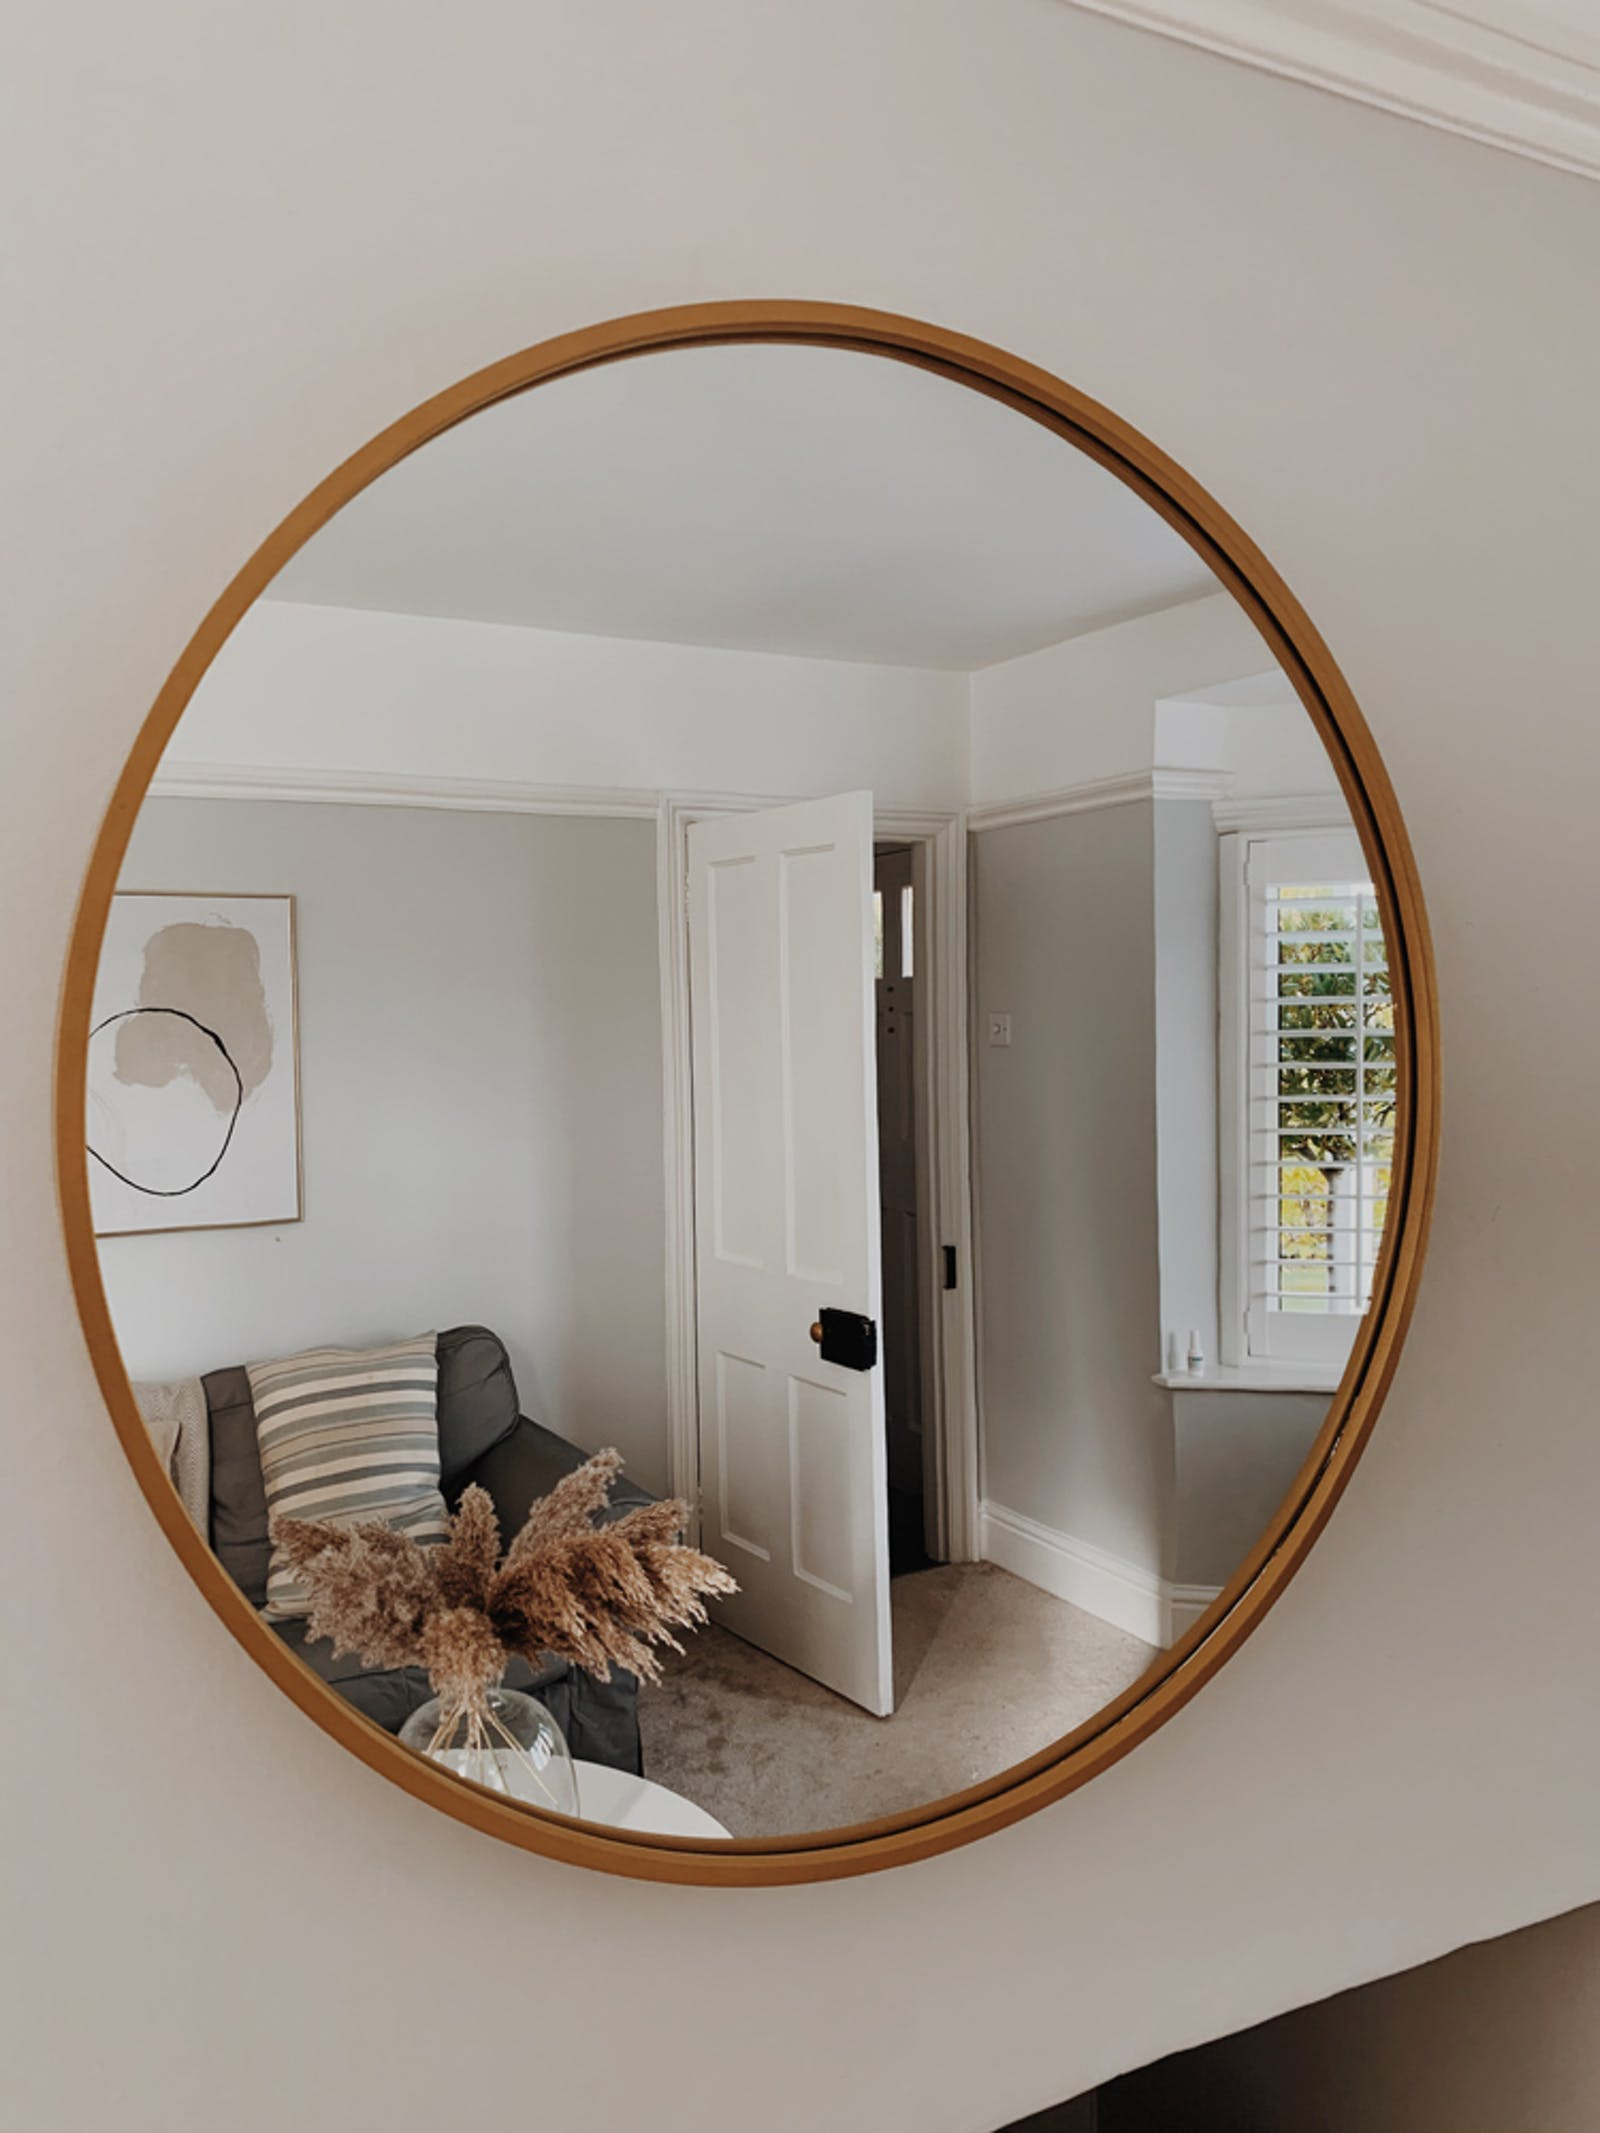 Living room painted in Lick Grey 01, seen in the reflection of a large circle mirror